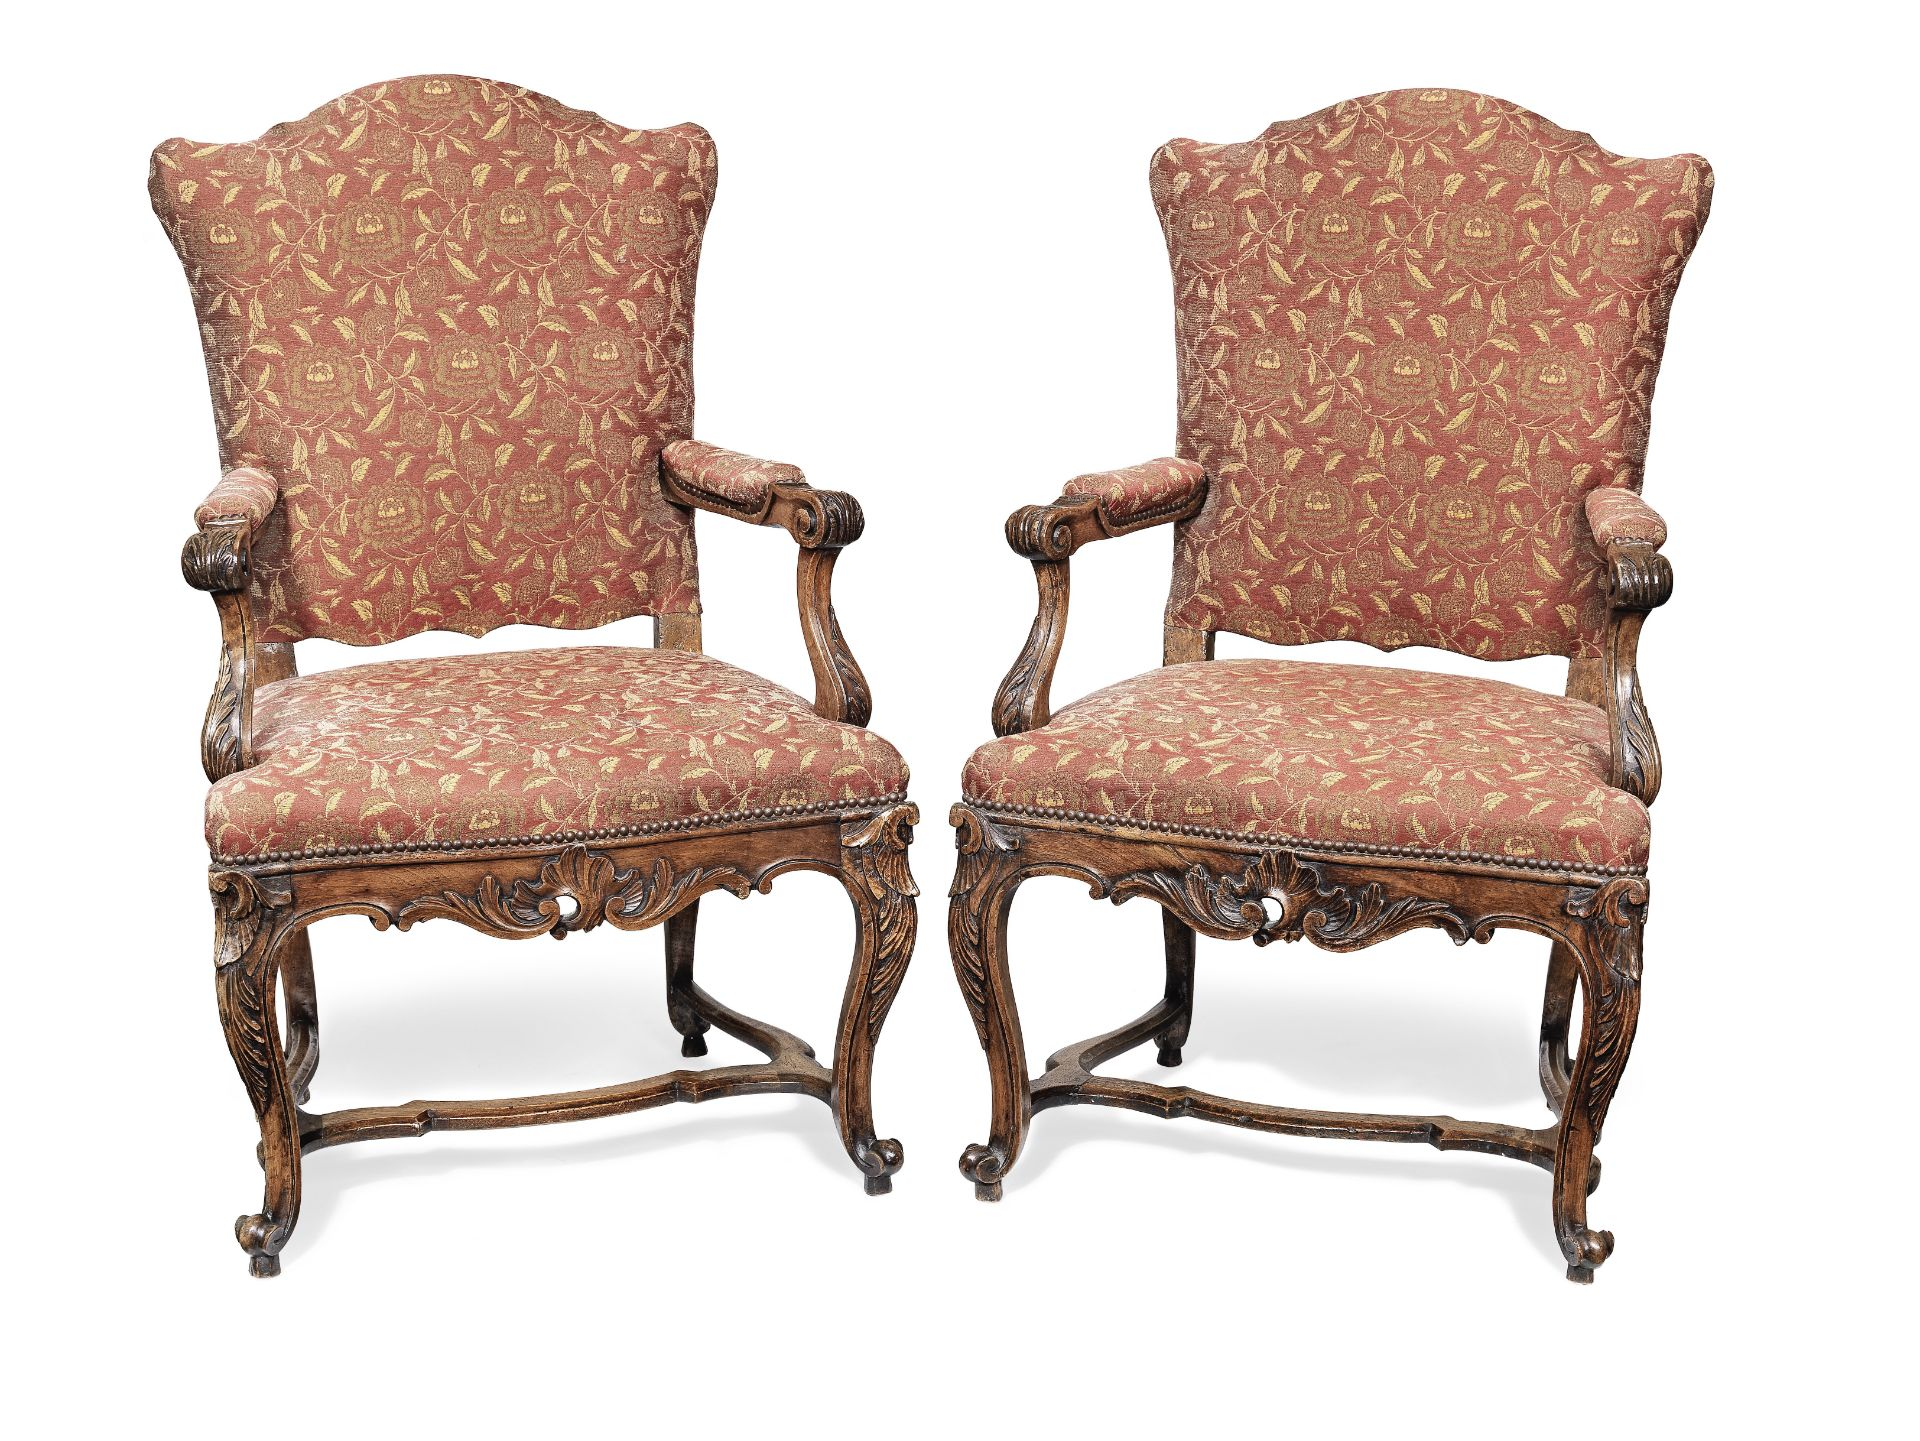 Los 110 - A pair of French 19th century walnut fauteuils in the early Louis XV style (2)